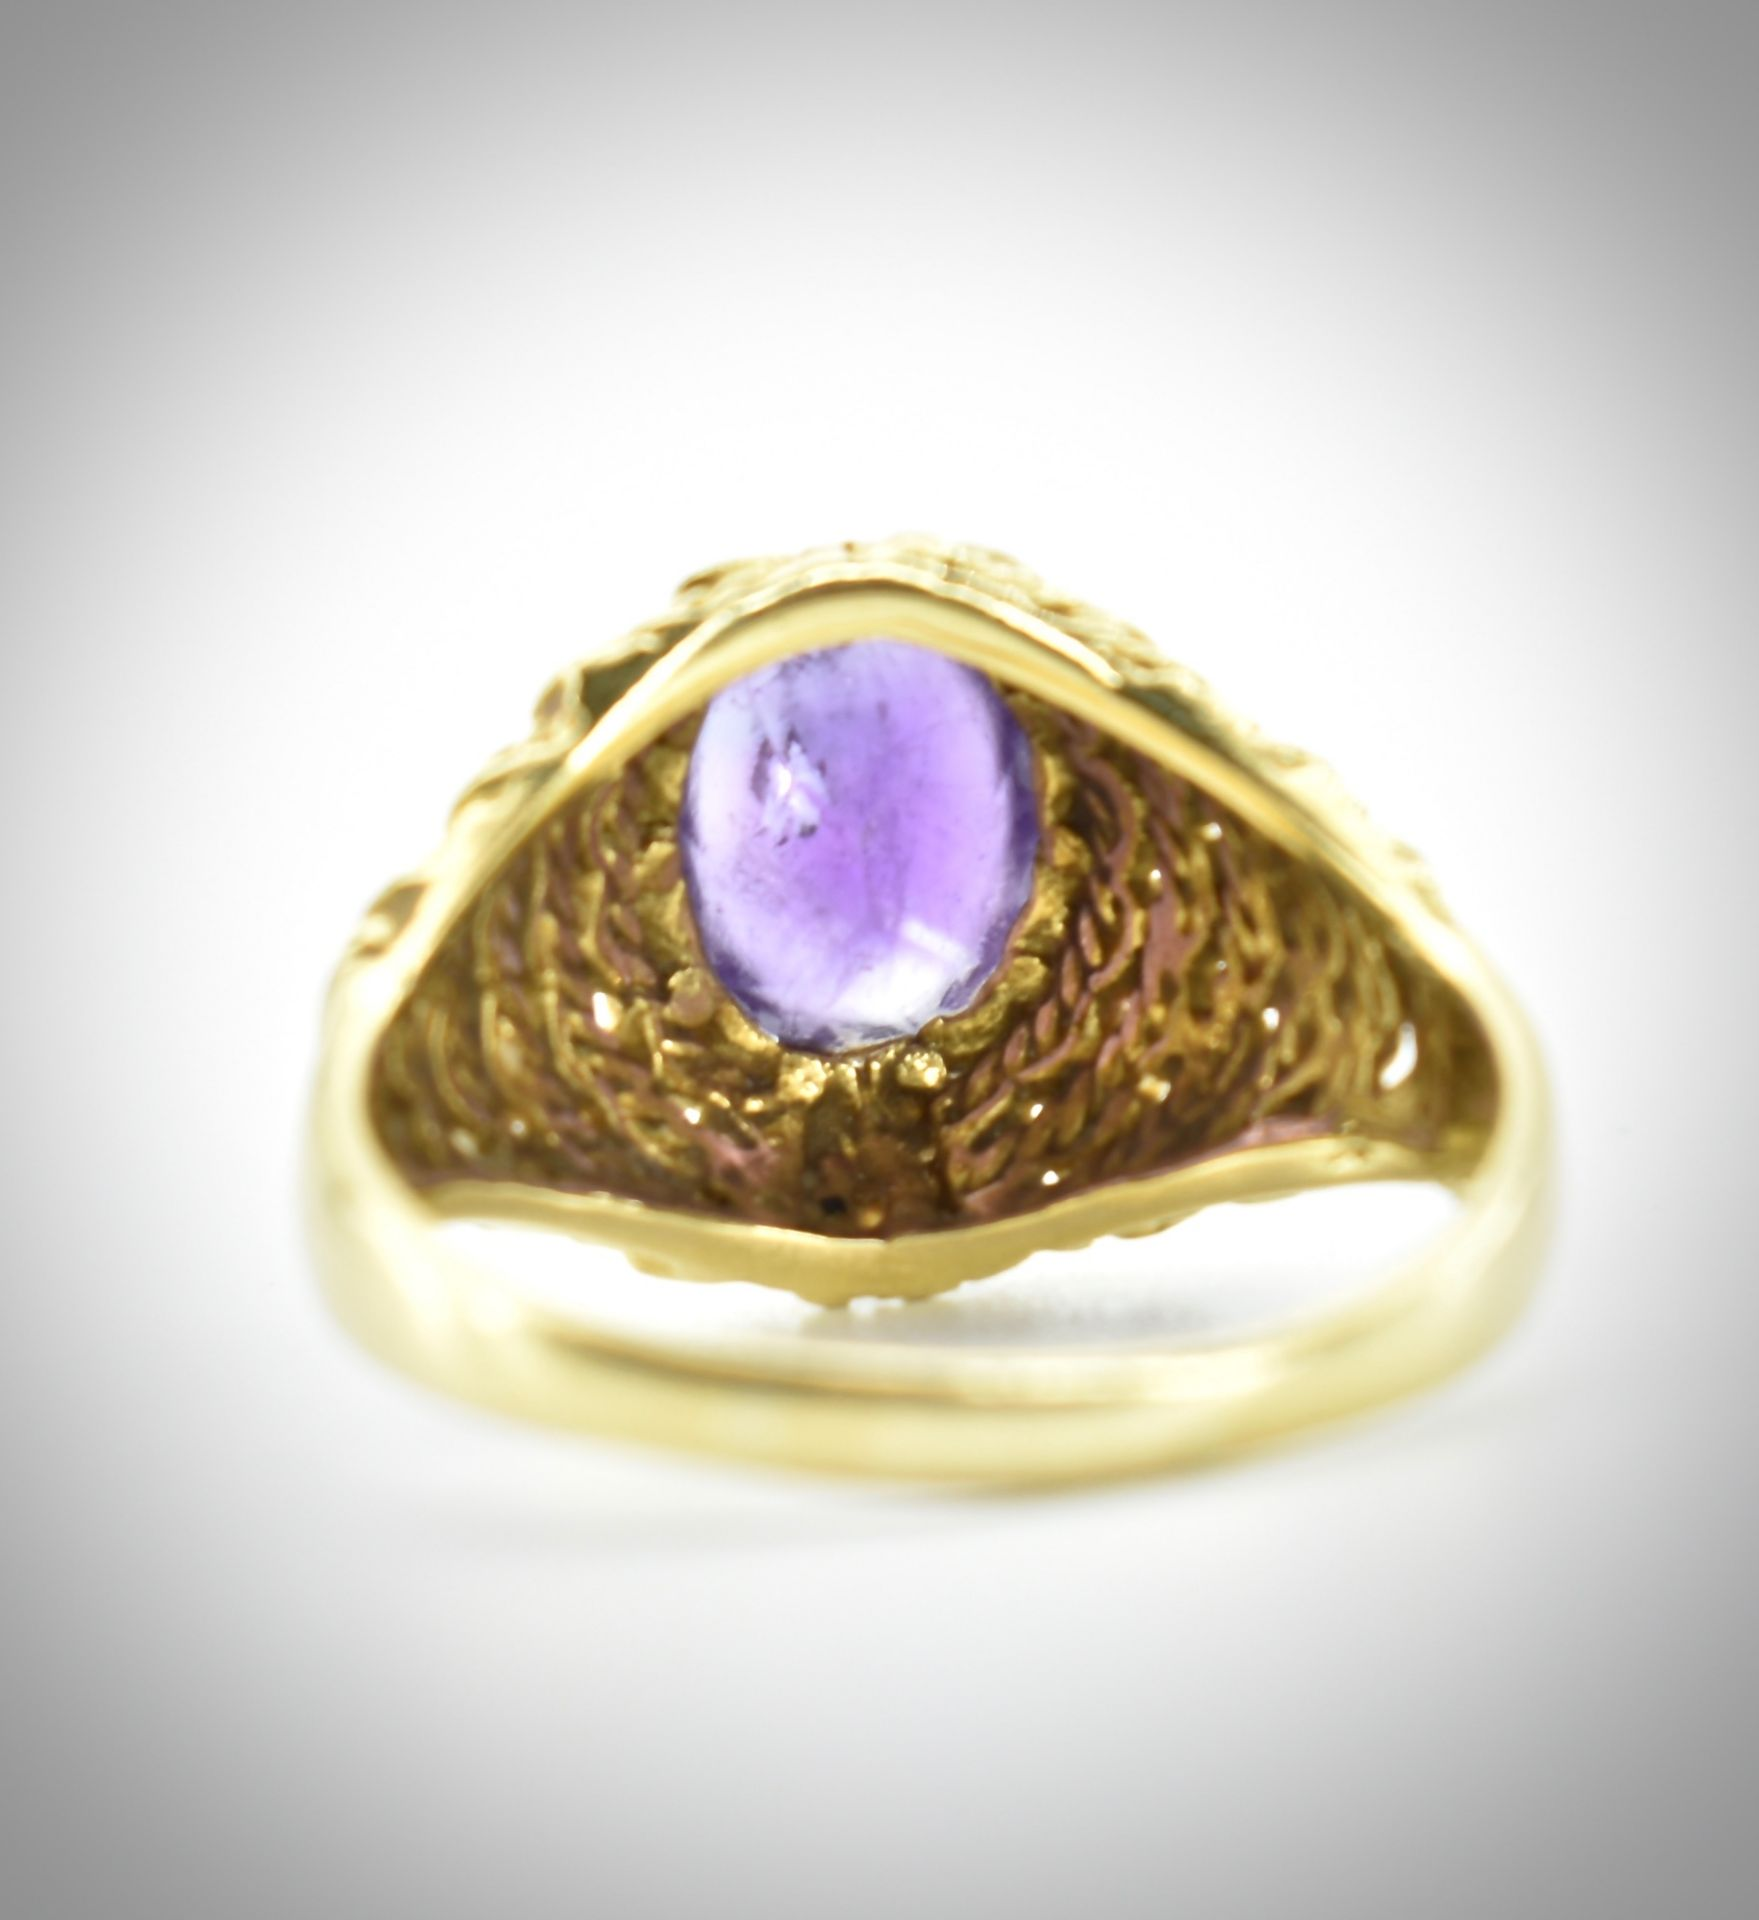 18ct Gold & Amethyst Ring - Image 6 of 7